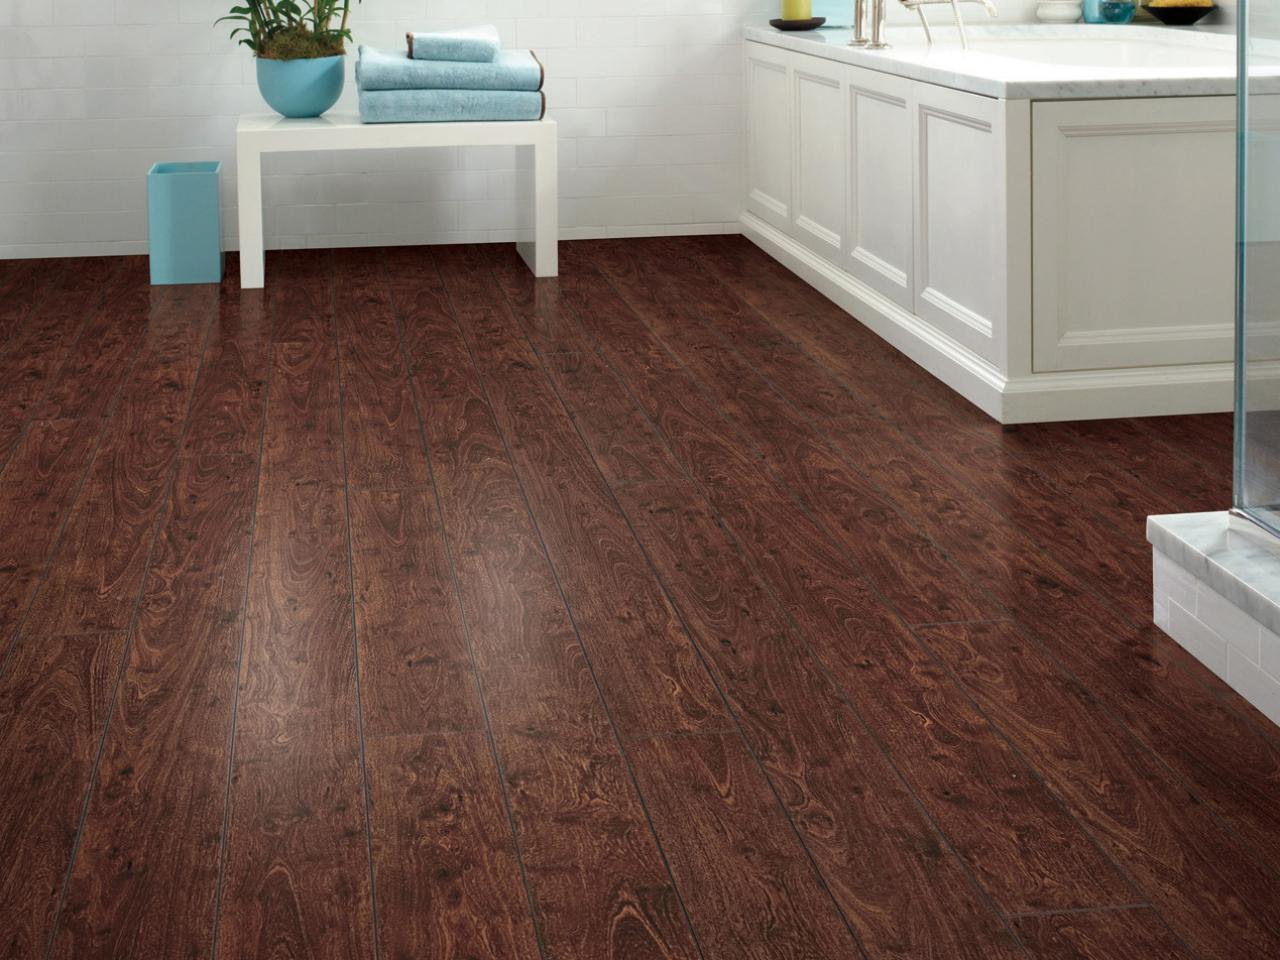 Laminate Or Wood Floors Bathroom With Dark Hardwood Floors